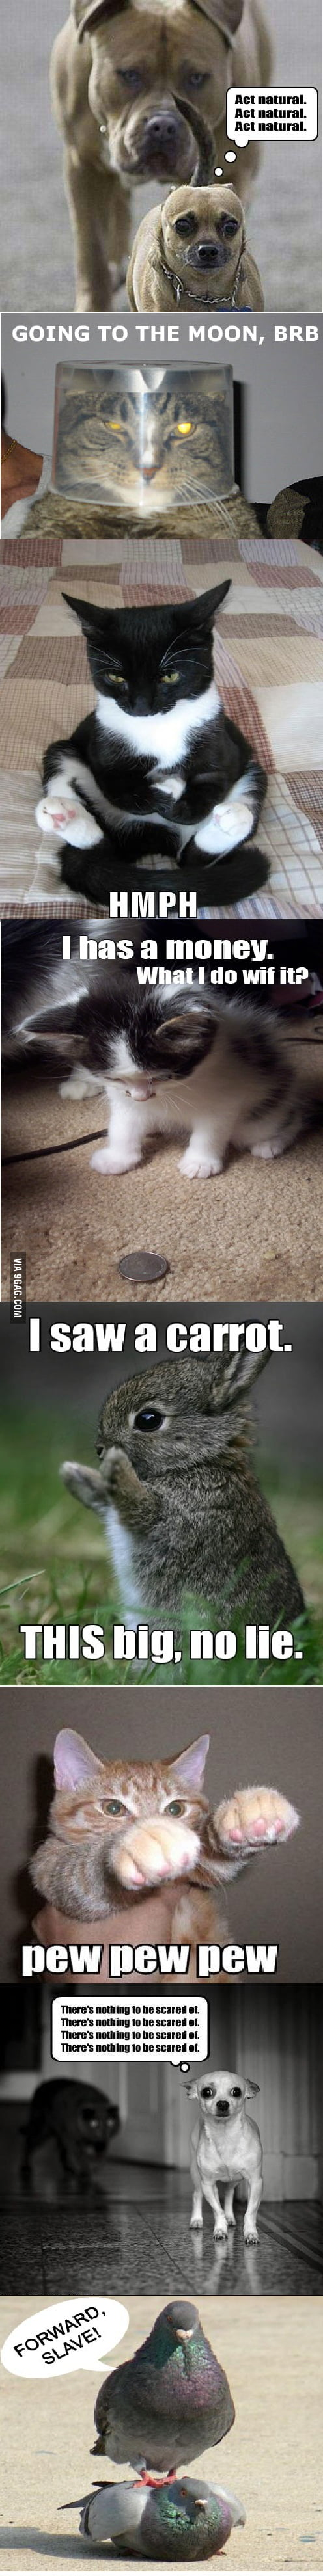 funny animal pictures   9gag